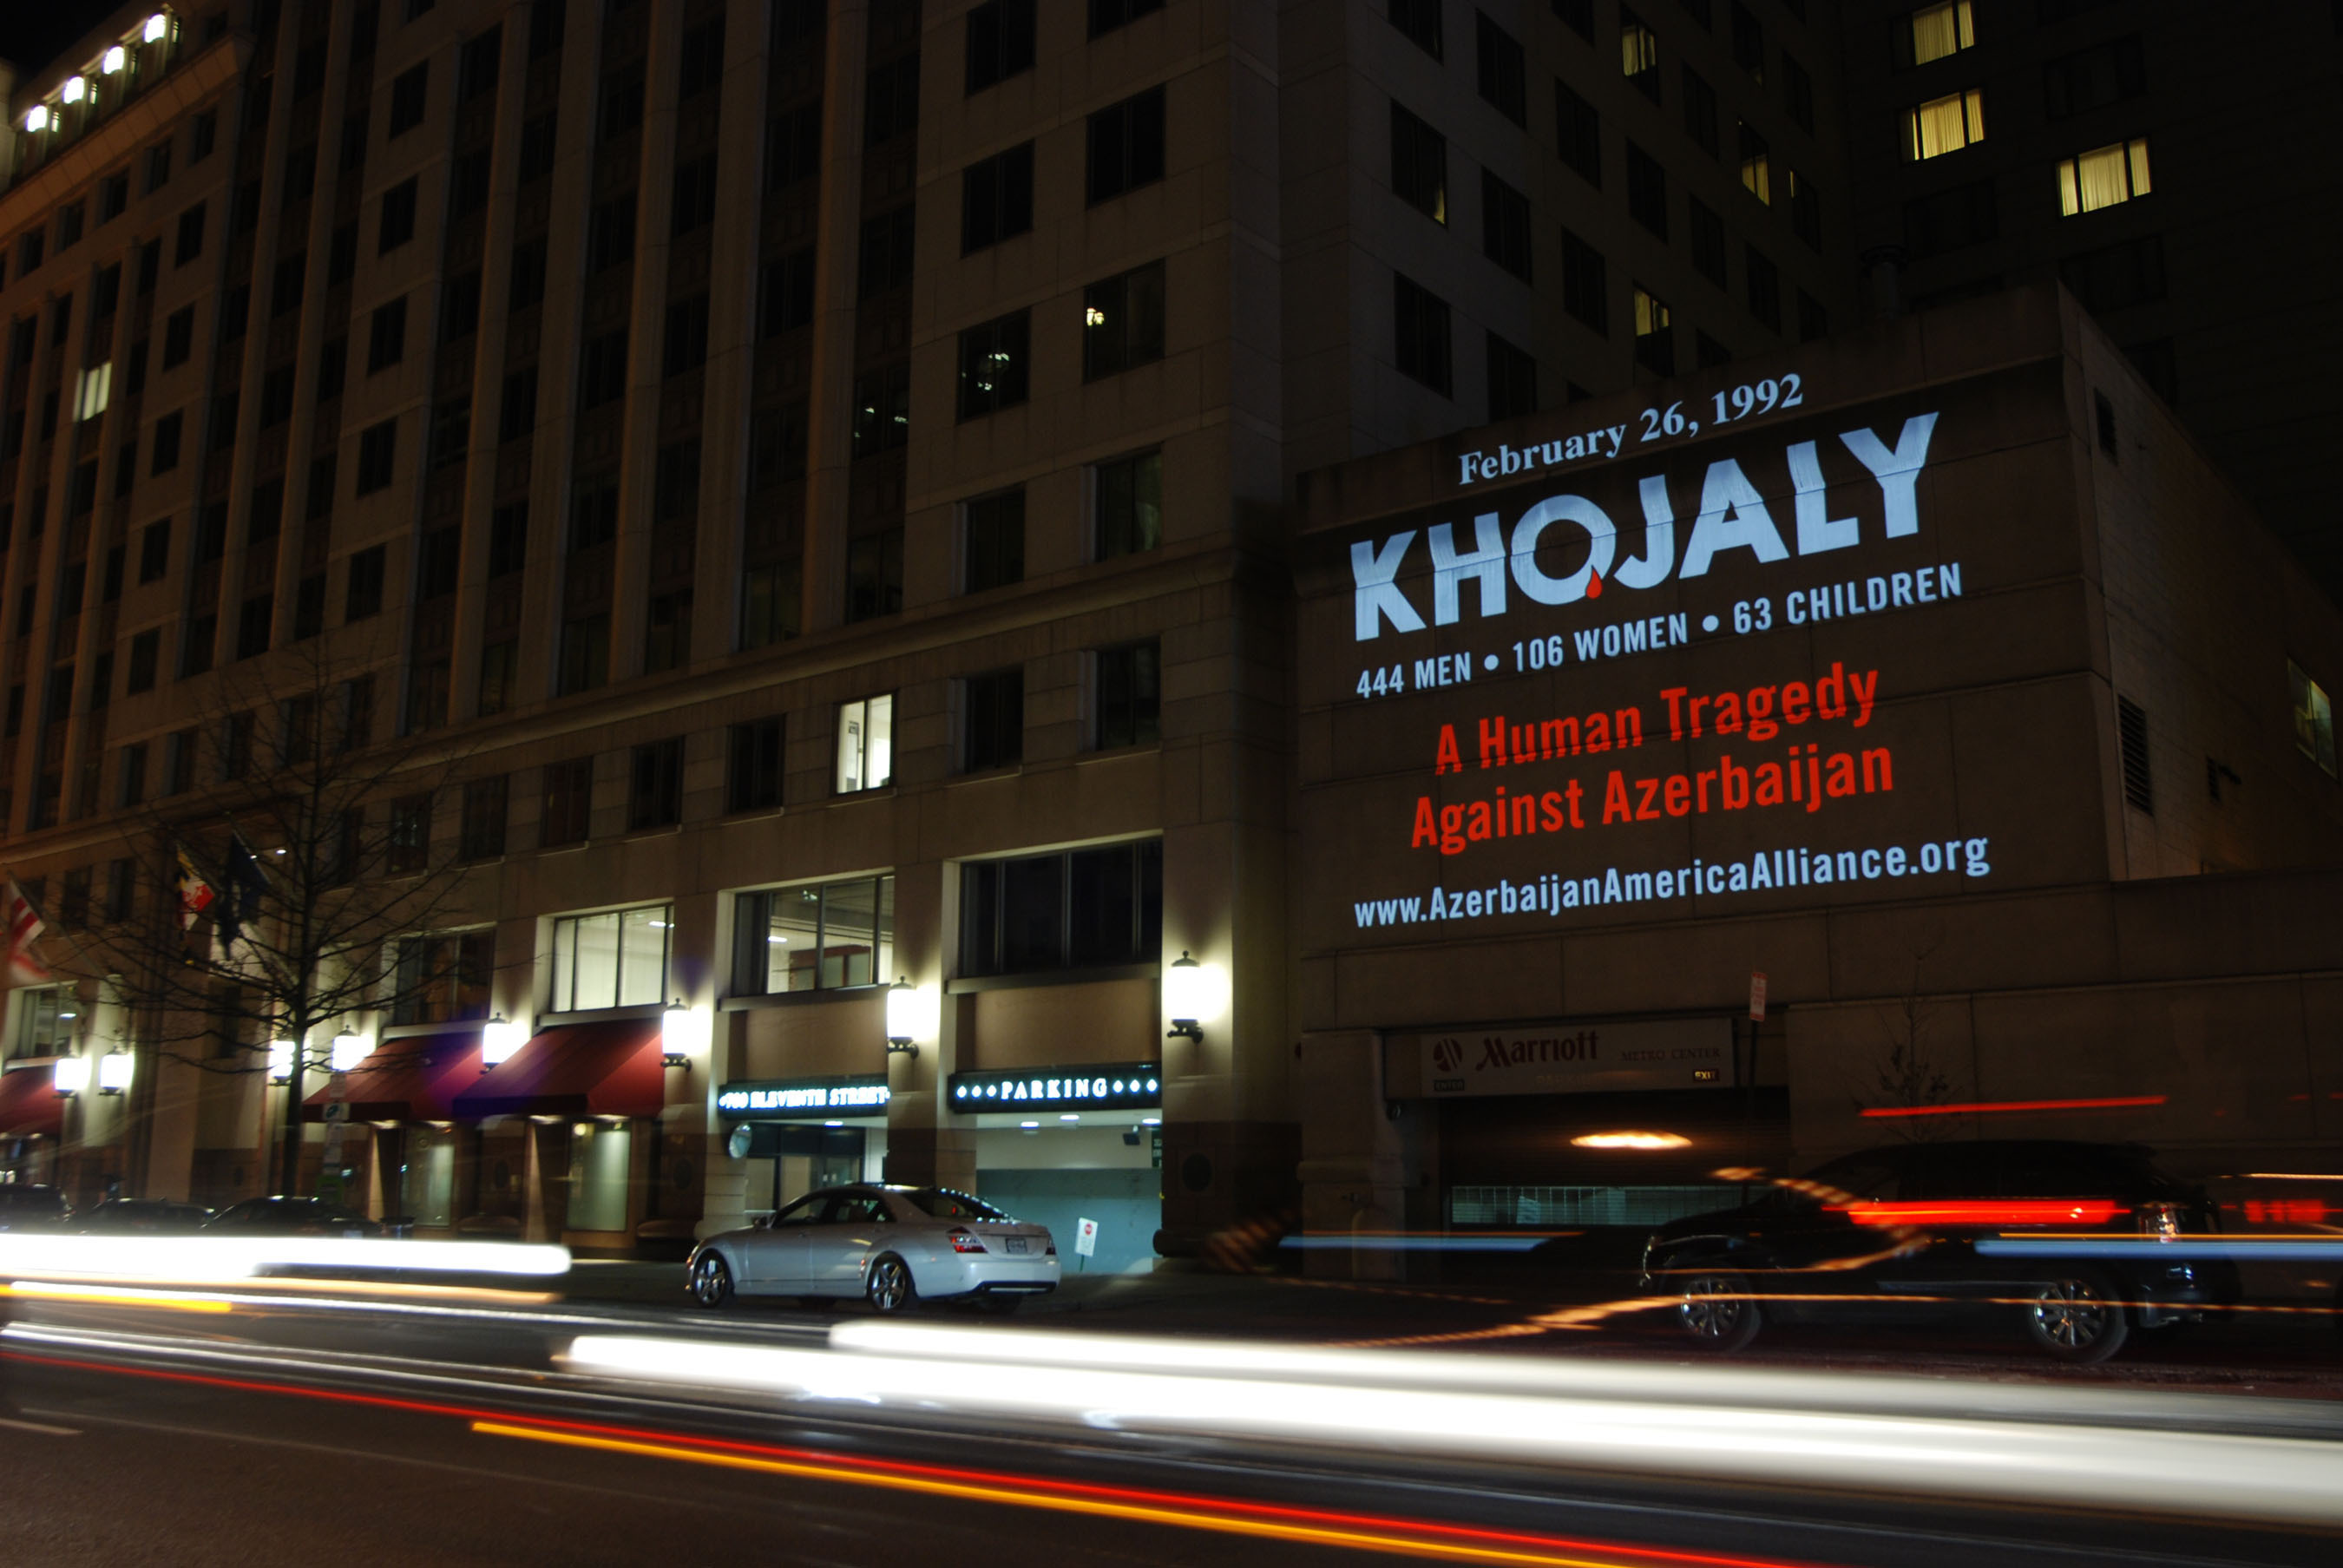 A national public awareness campaign commemorating the 22nd anniversary of the 1992 massacre of nearly 1000 Azerbaijani civilians in the village of Khojaly by Armenian and Russian military forces is bringing important attention to the status of refugees within Azerbaijan. The campaign, led by the American Azerbaijan Alliance, is currently underway in Washington, D.C. and New York City where hundreds of Khojaly posters are located at subways and at bus stops, and mobile projections on buildings throughout both cities in Washington, D.C. and New York with messages commemorating the human tragedy against Azerbaijan. (PRNewsFoto/Azerbaijan America Alliance) (PRNewsFoto/AZERBAIJAN AMERICA ALLIANCE)